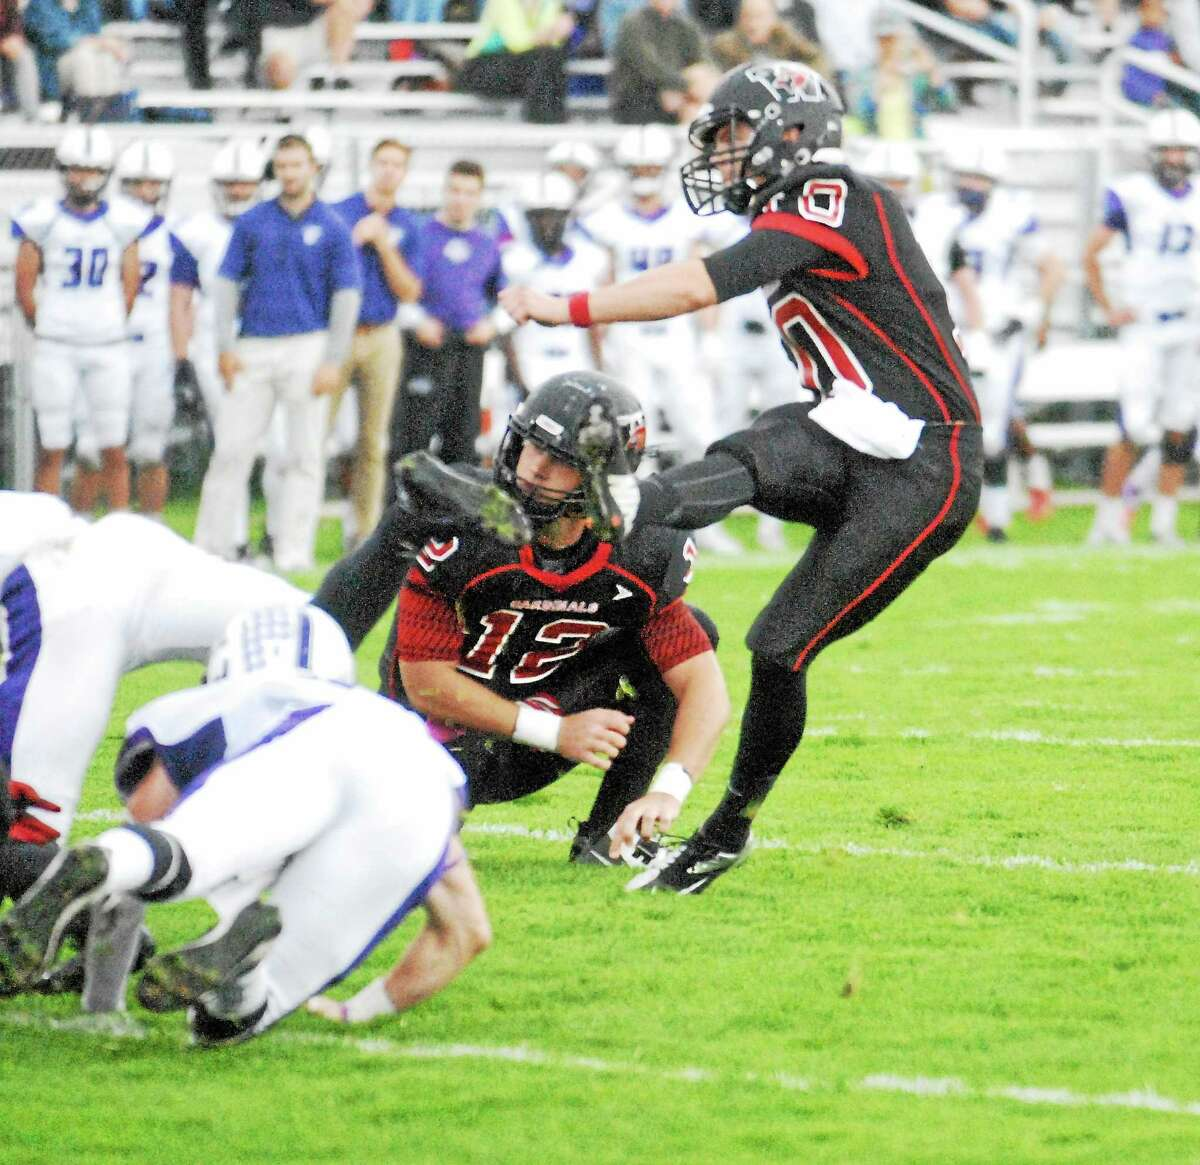 Wesleyan sophomore placekicker Ike Fuchs set a school record with five field goals in the Cardinals' 22-0 win at Williams on Saturday.